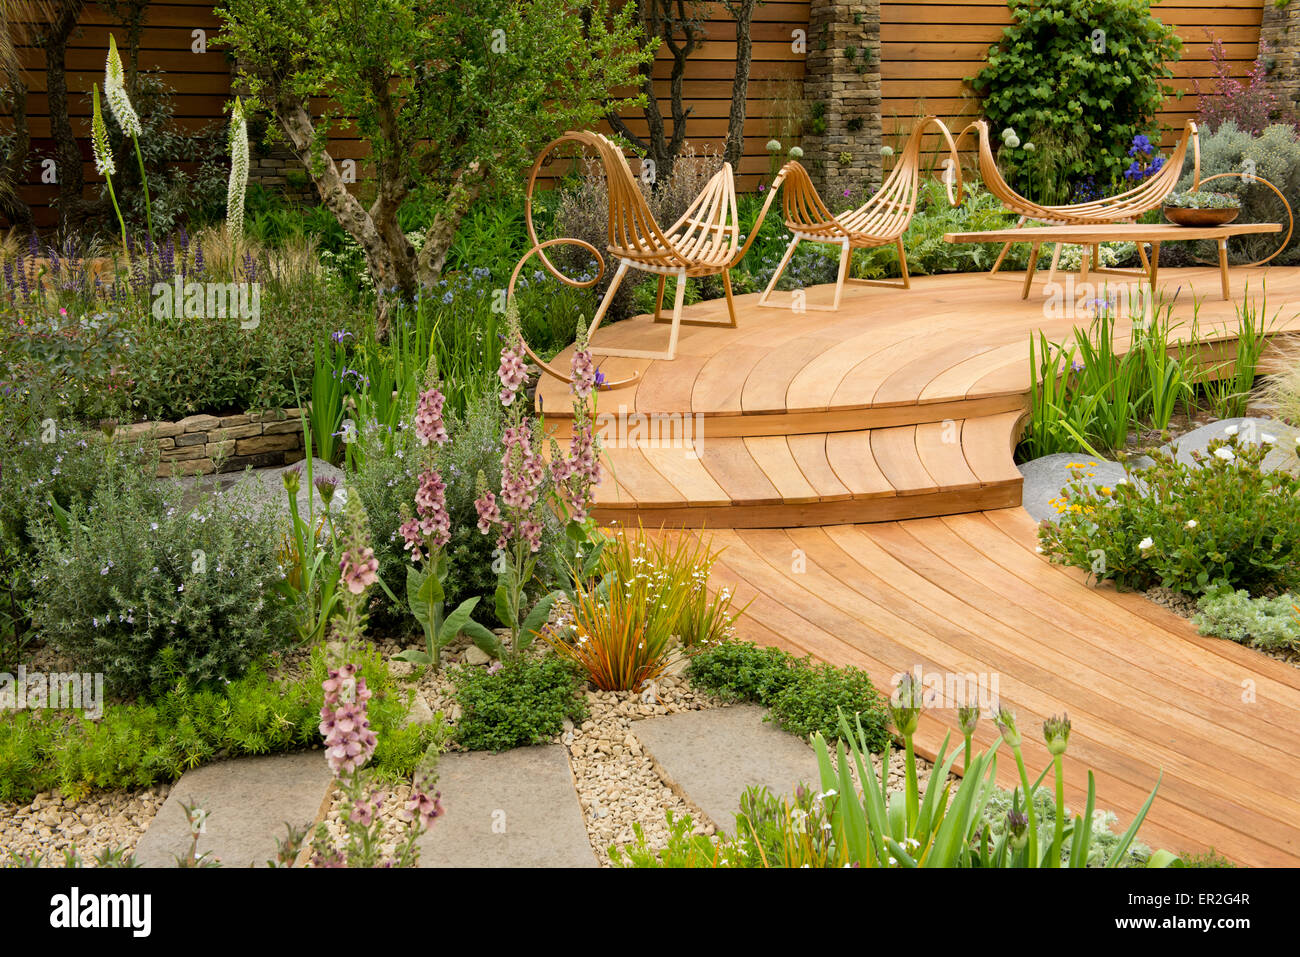 Curved Wooden Decking And Chairs Surrounded By Plants In The Royal